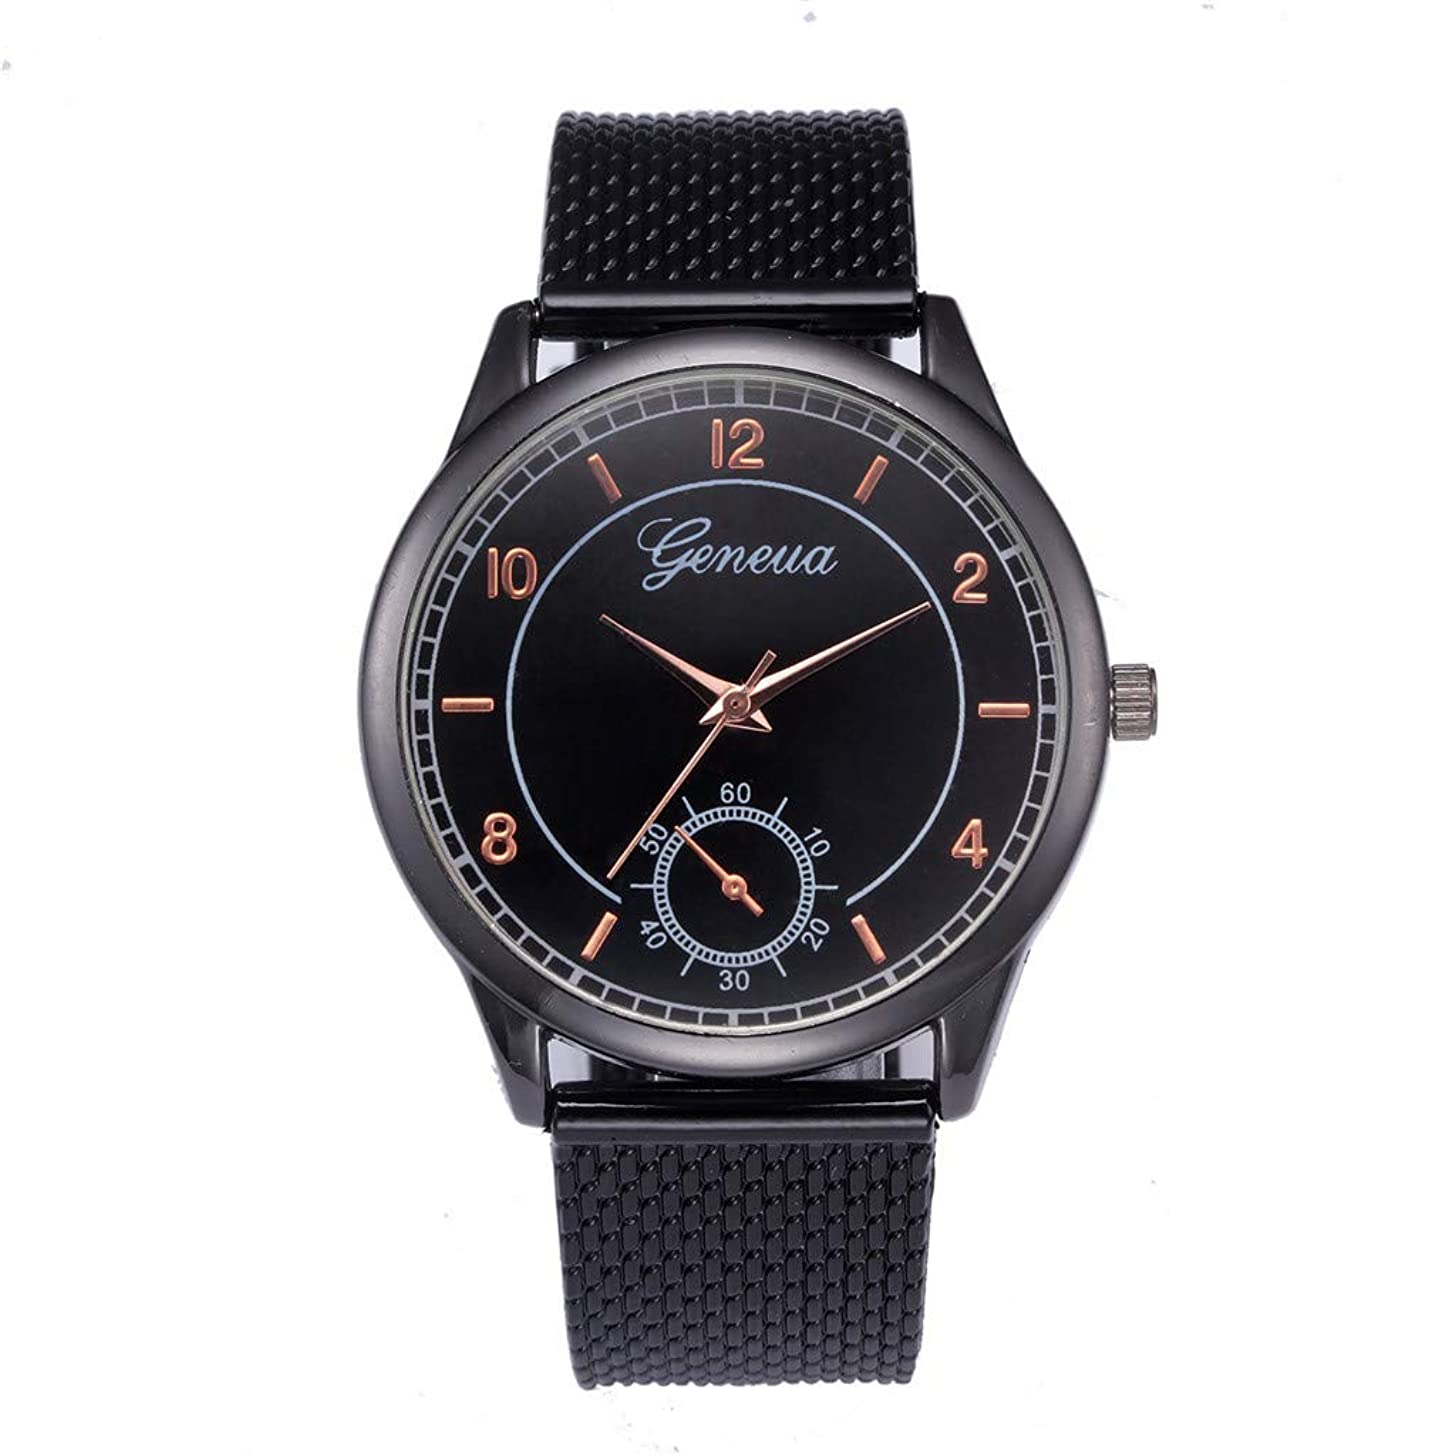 Hotkey Womens Bracelet Watches On Sale High-End Quality Fashion Retro Design Watch Men's Watch Trend Watch